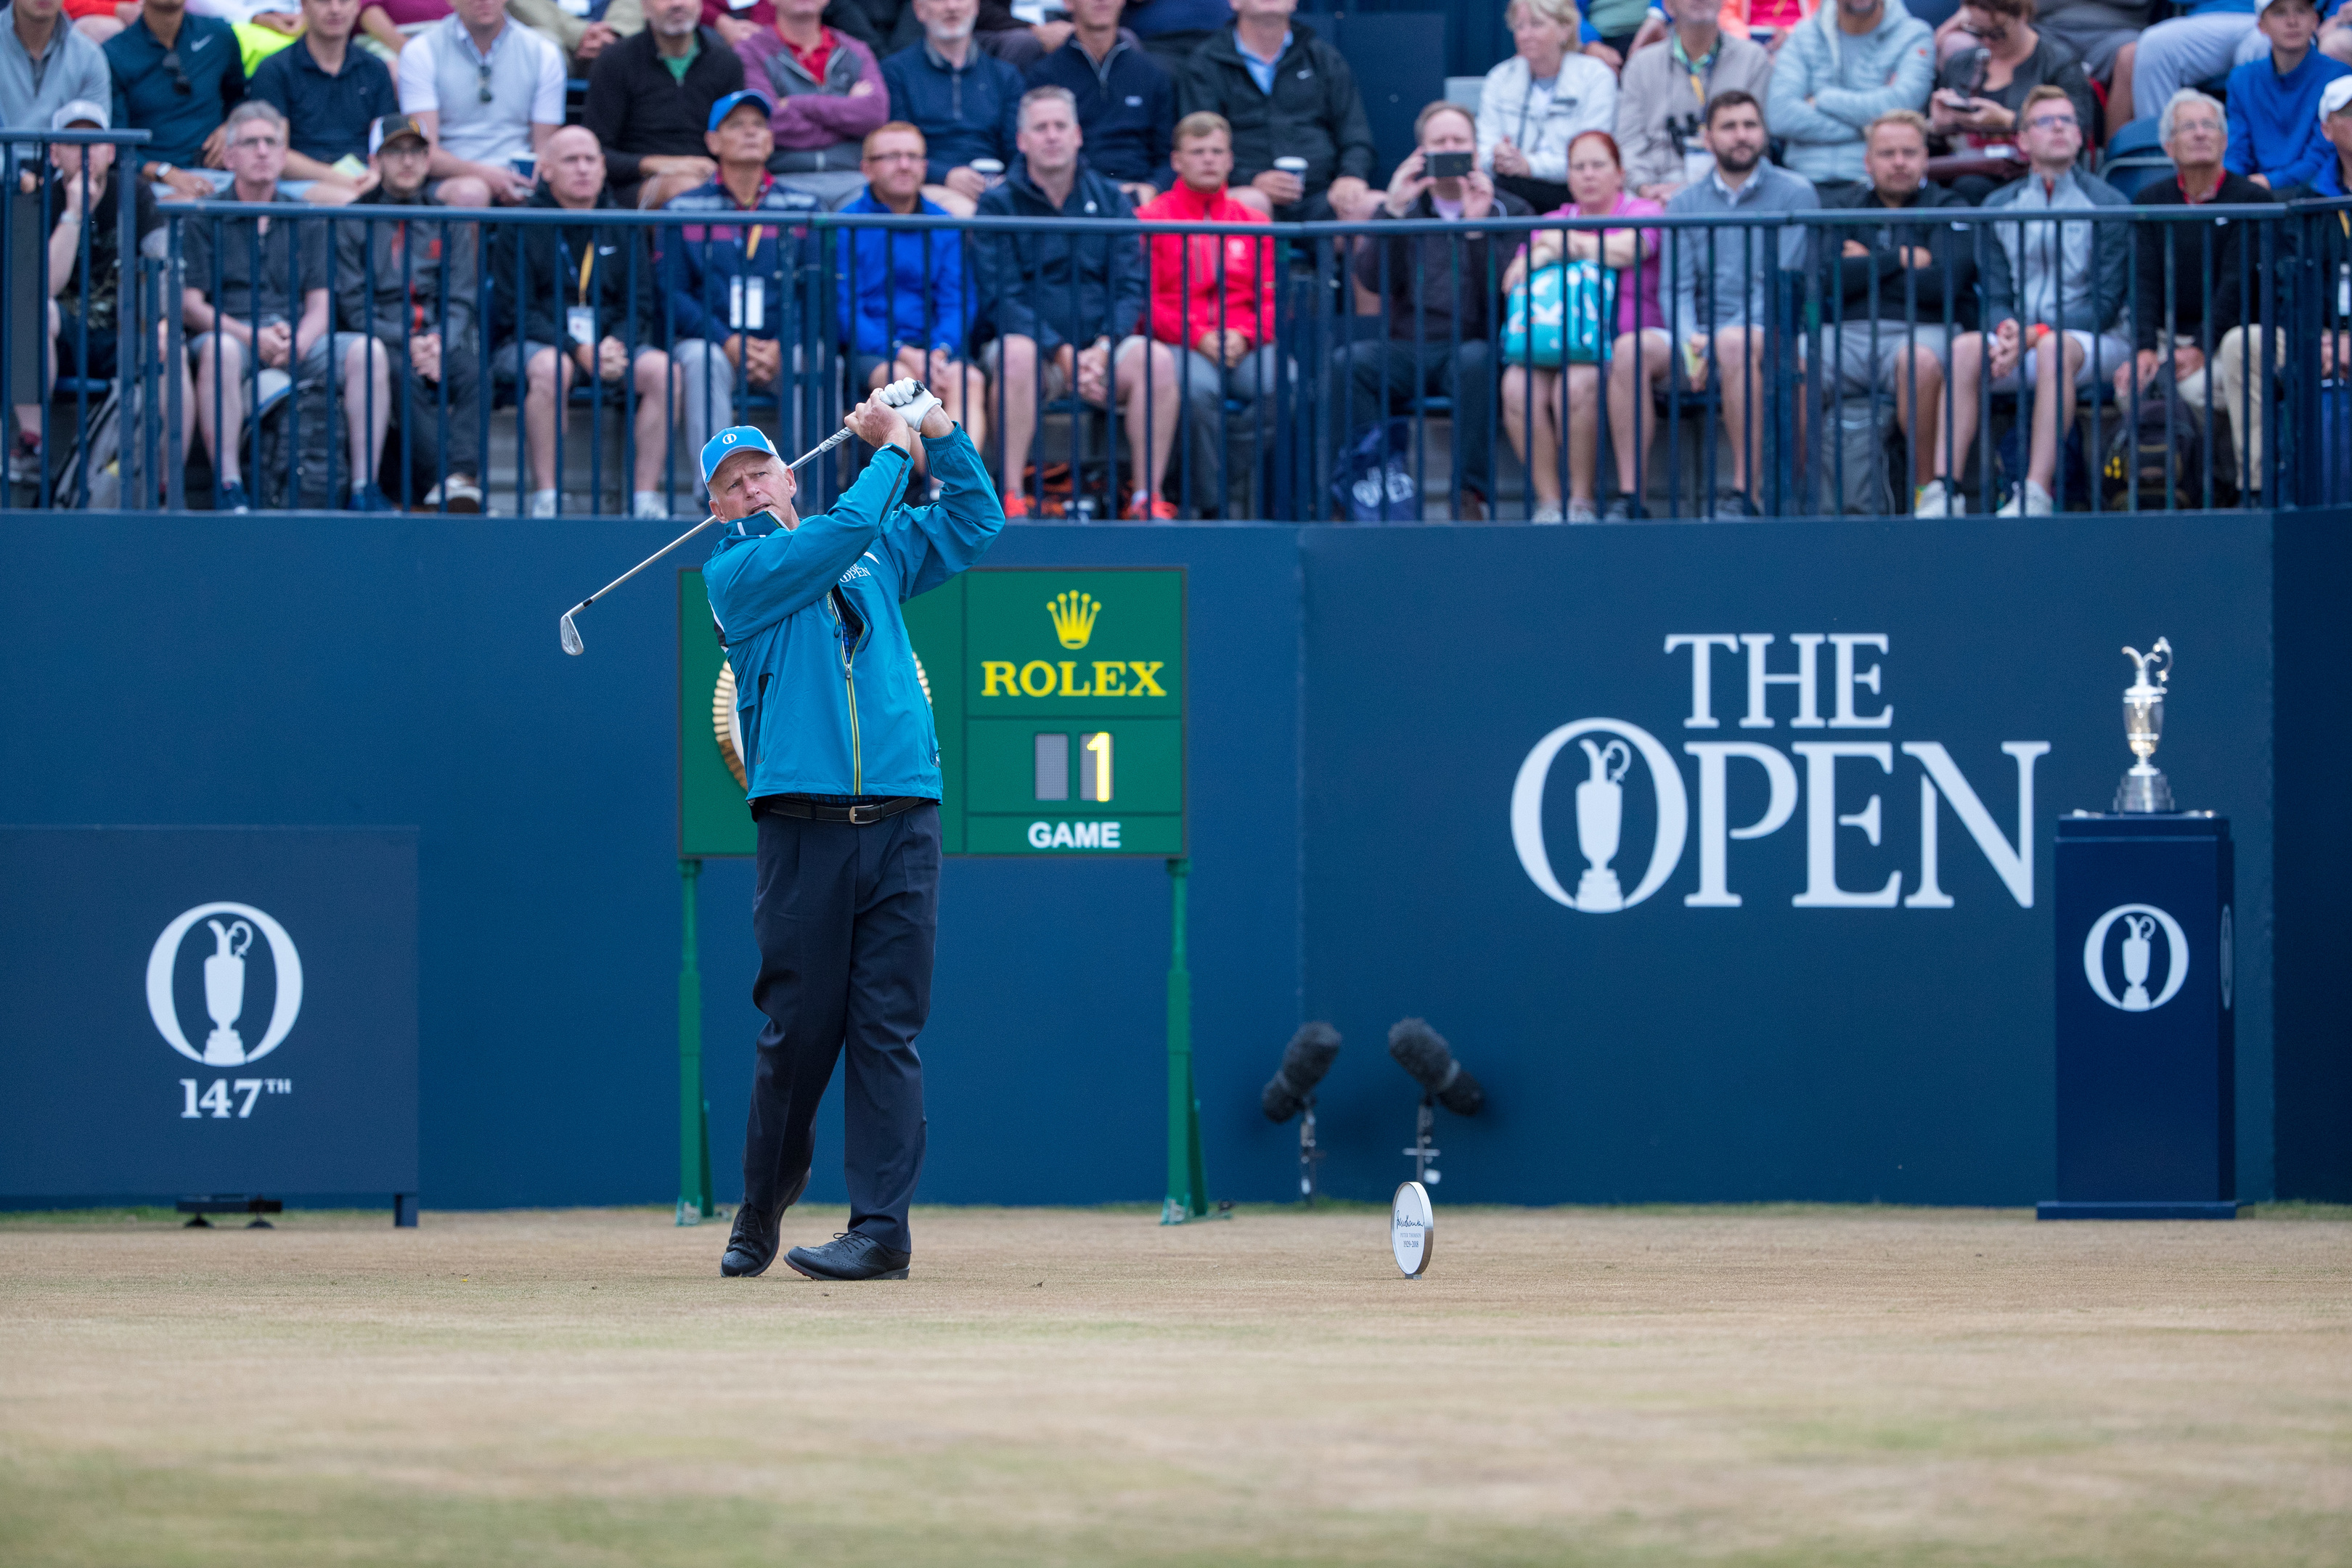 Sandy Lyle tees off first during day one of the 147th Open Championship